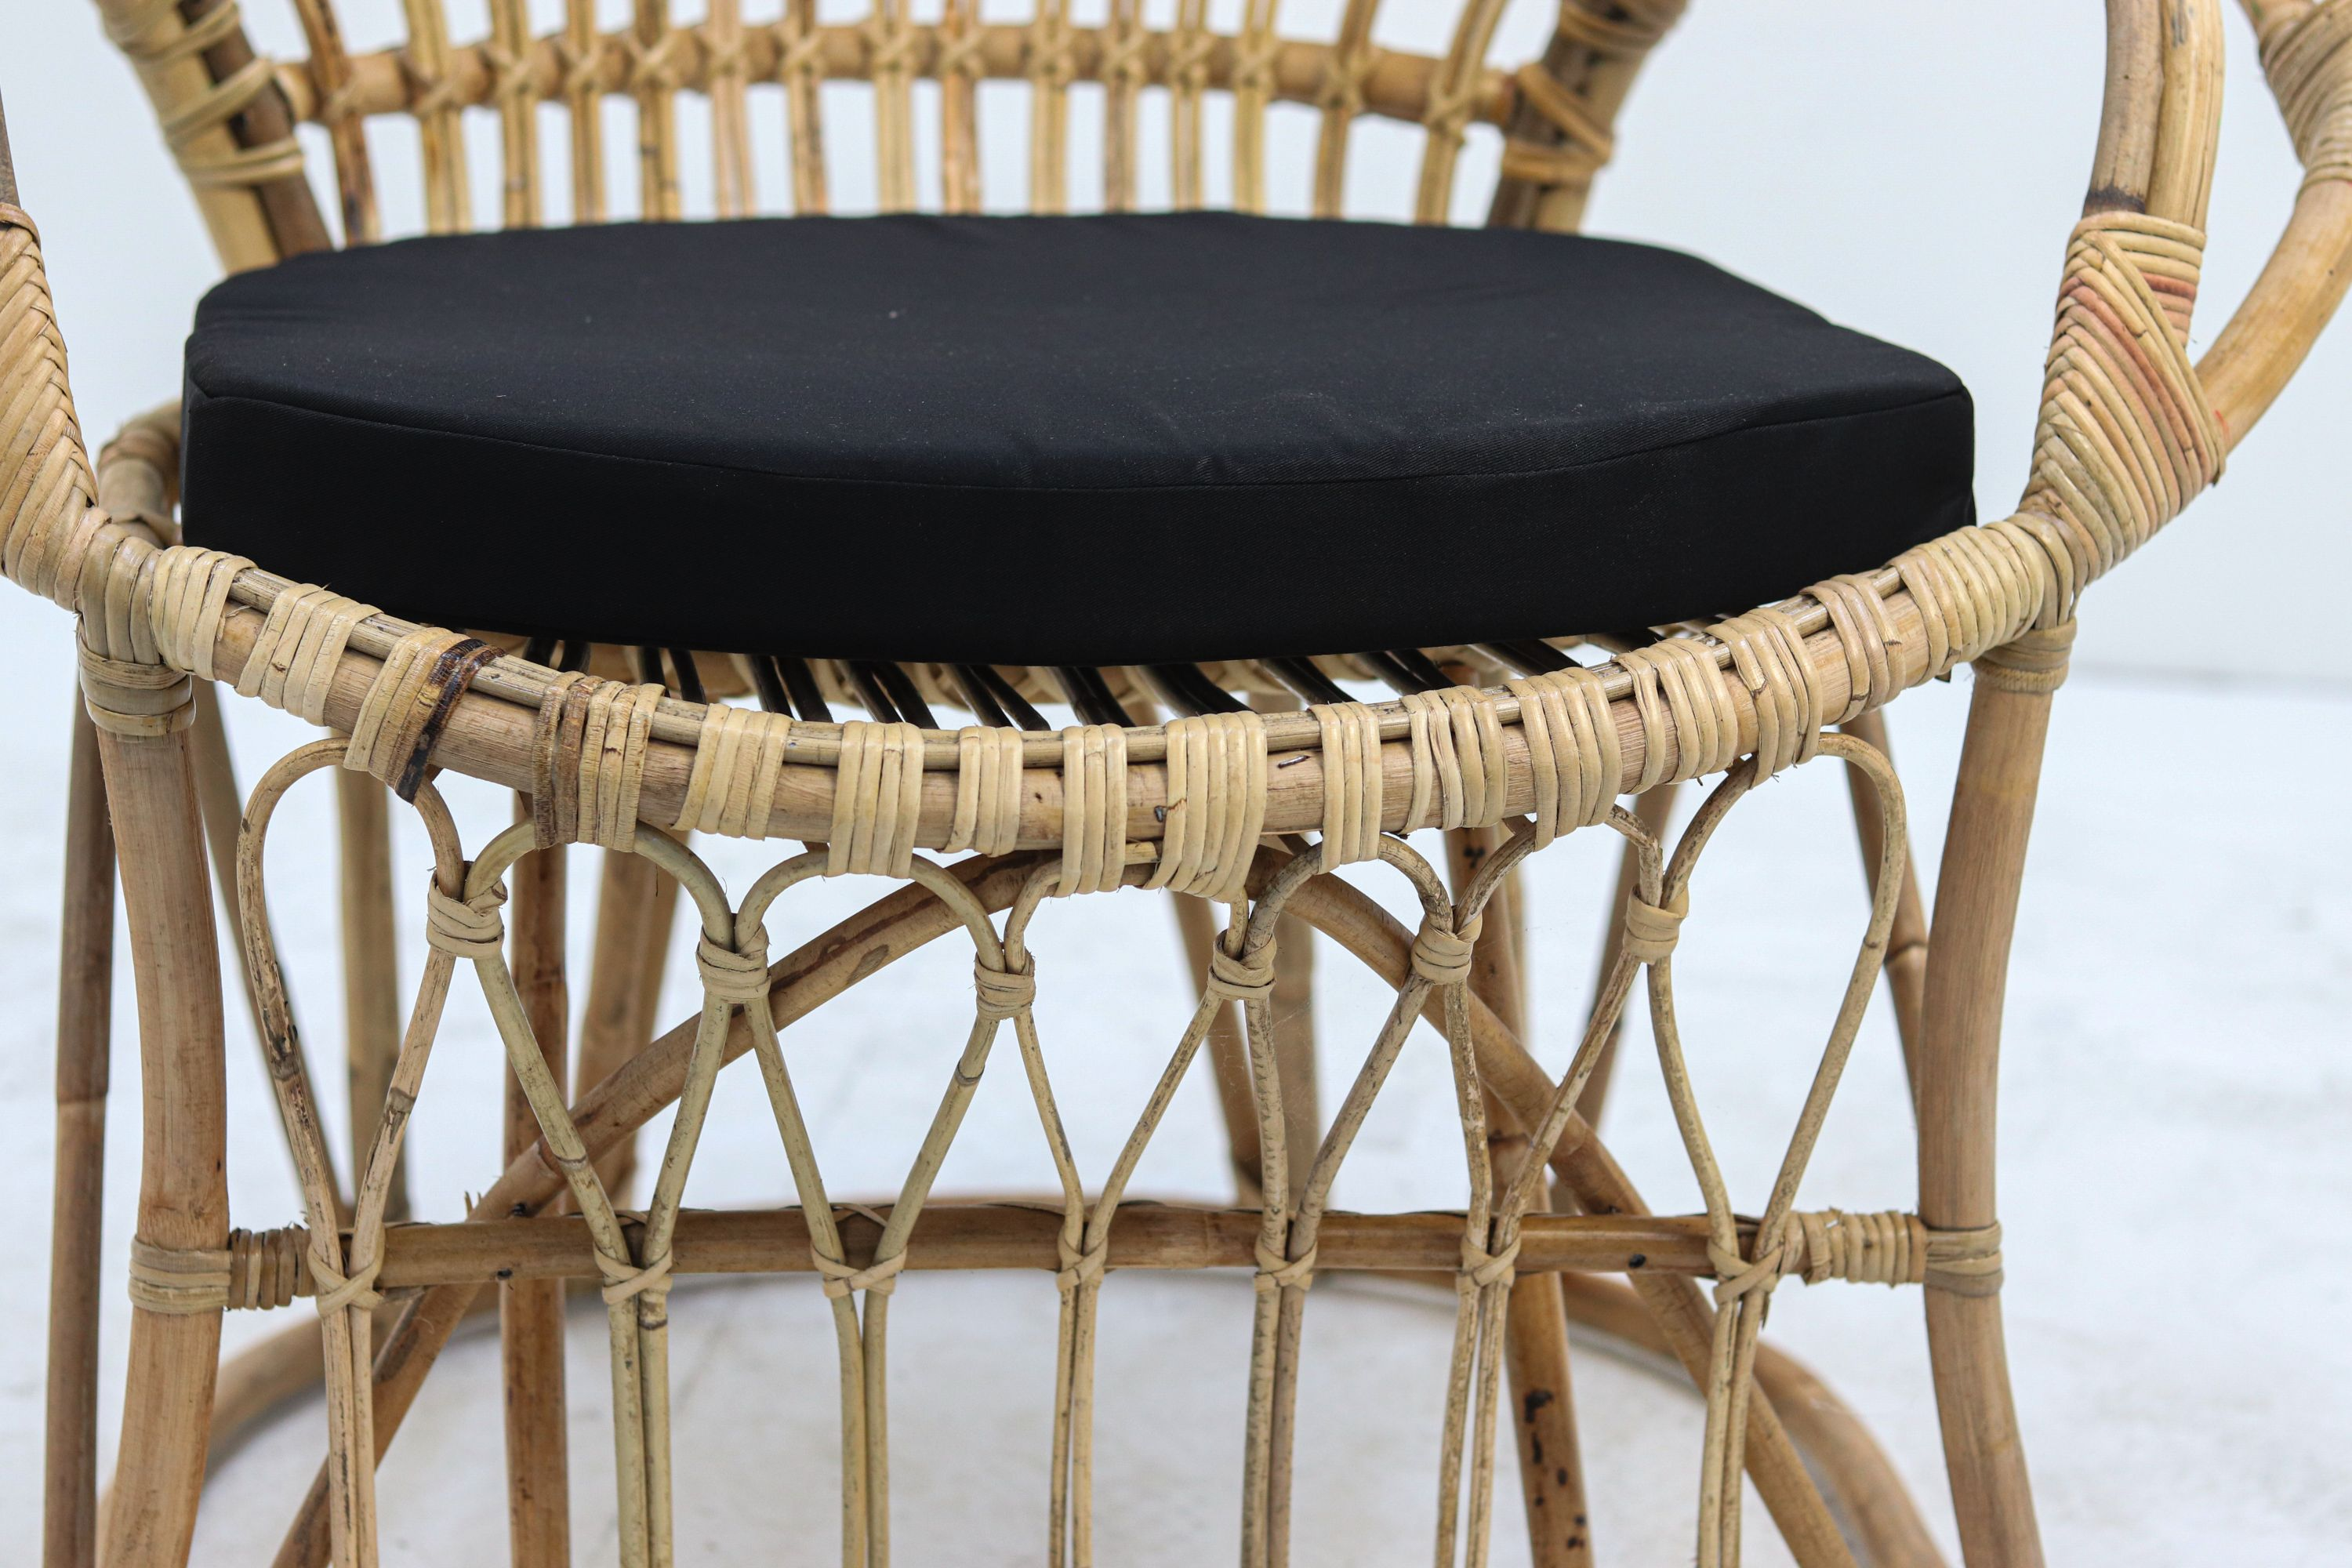 Rattan chair Medina - 90x60x135 - Rattan - Natural brown